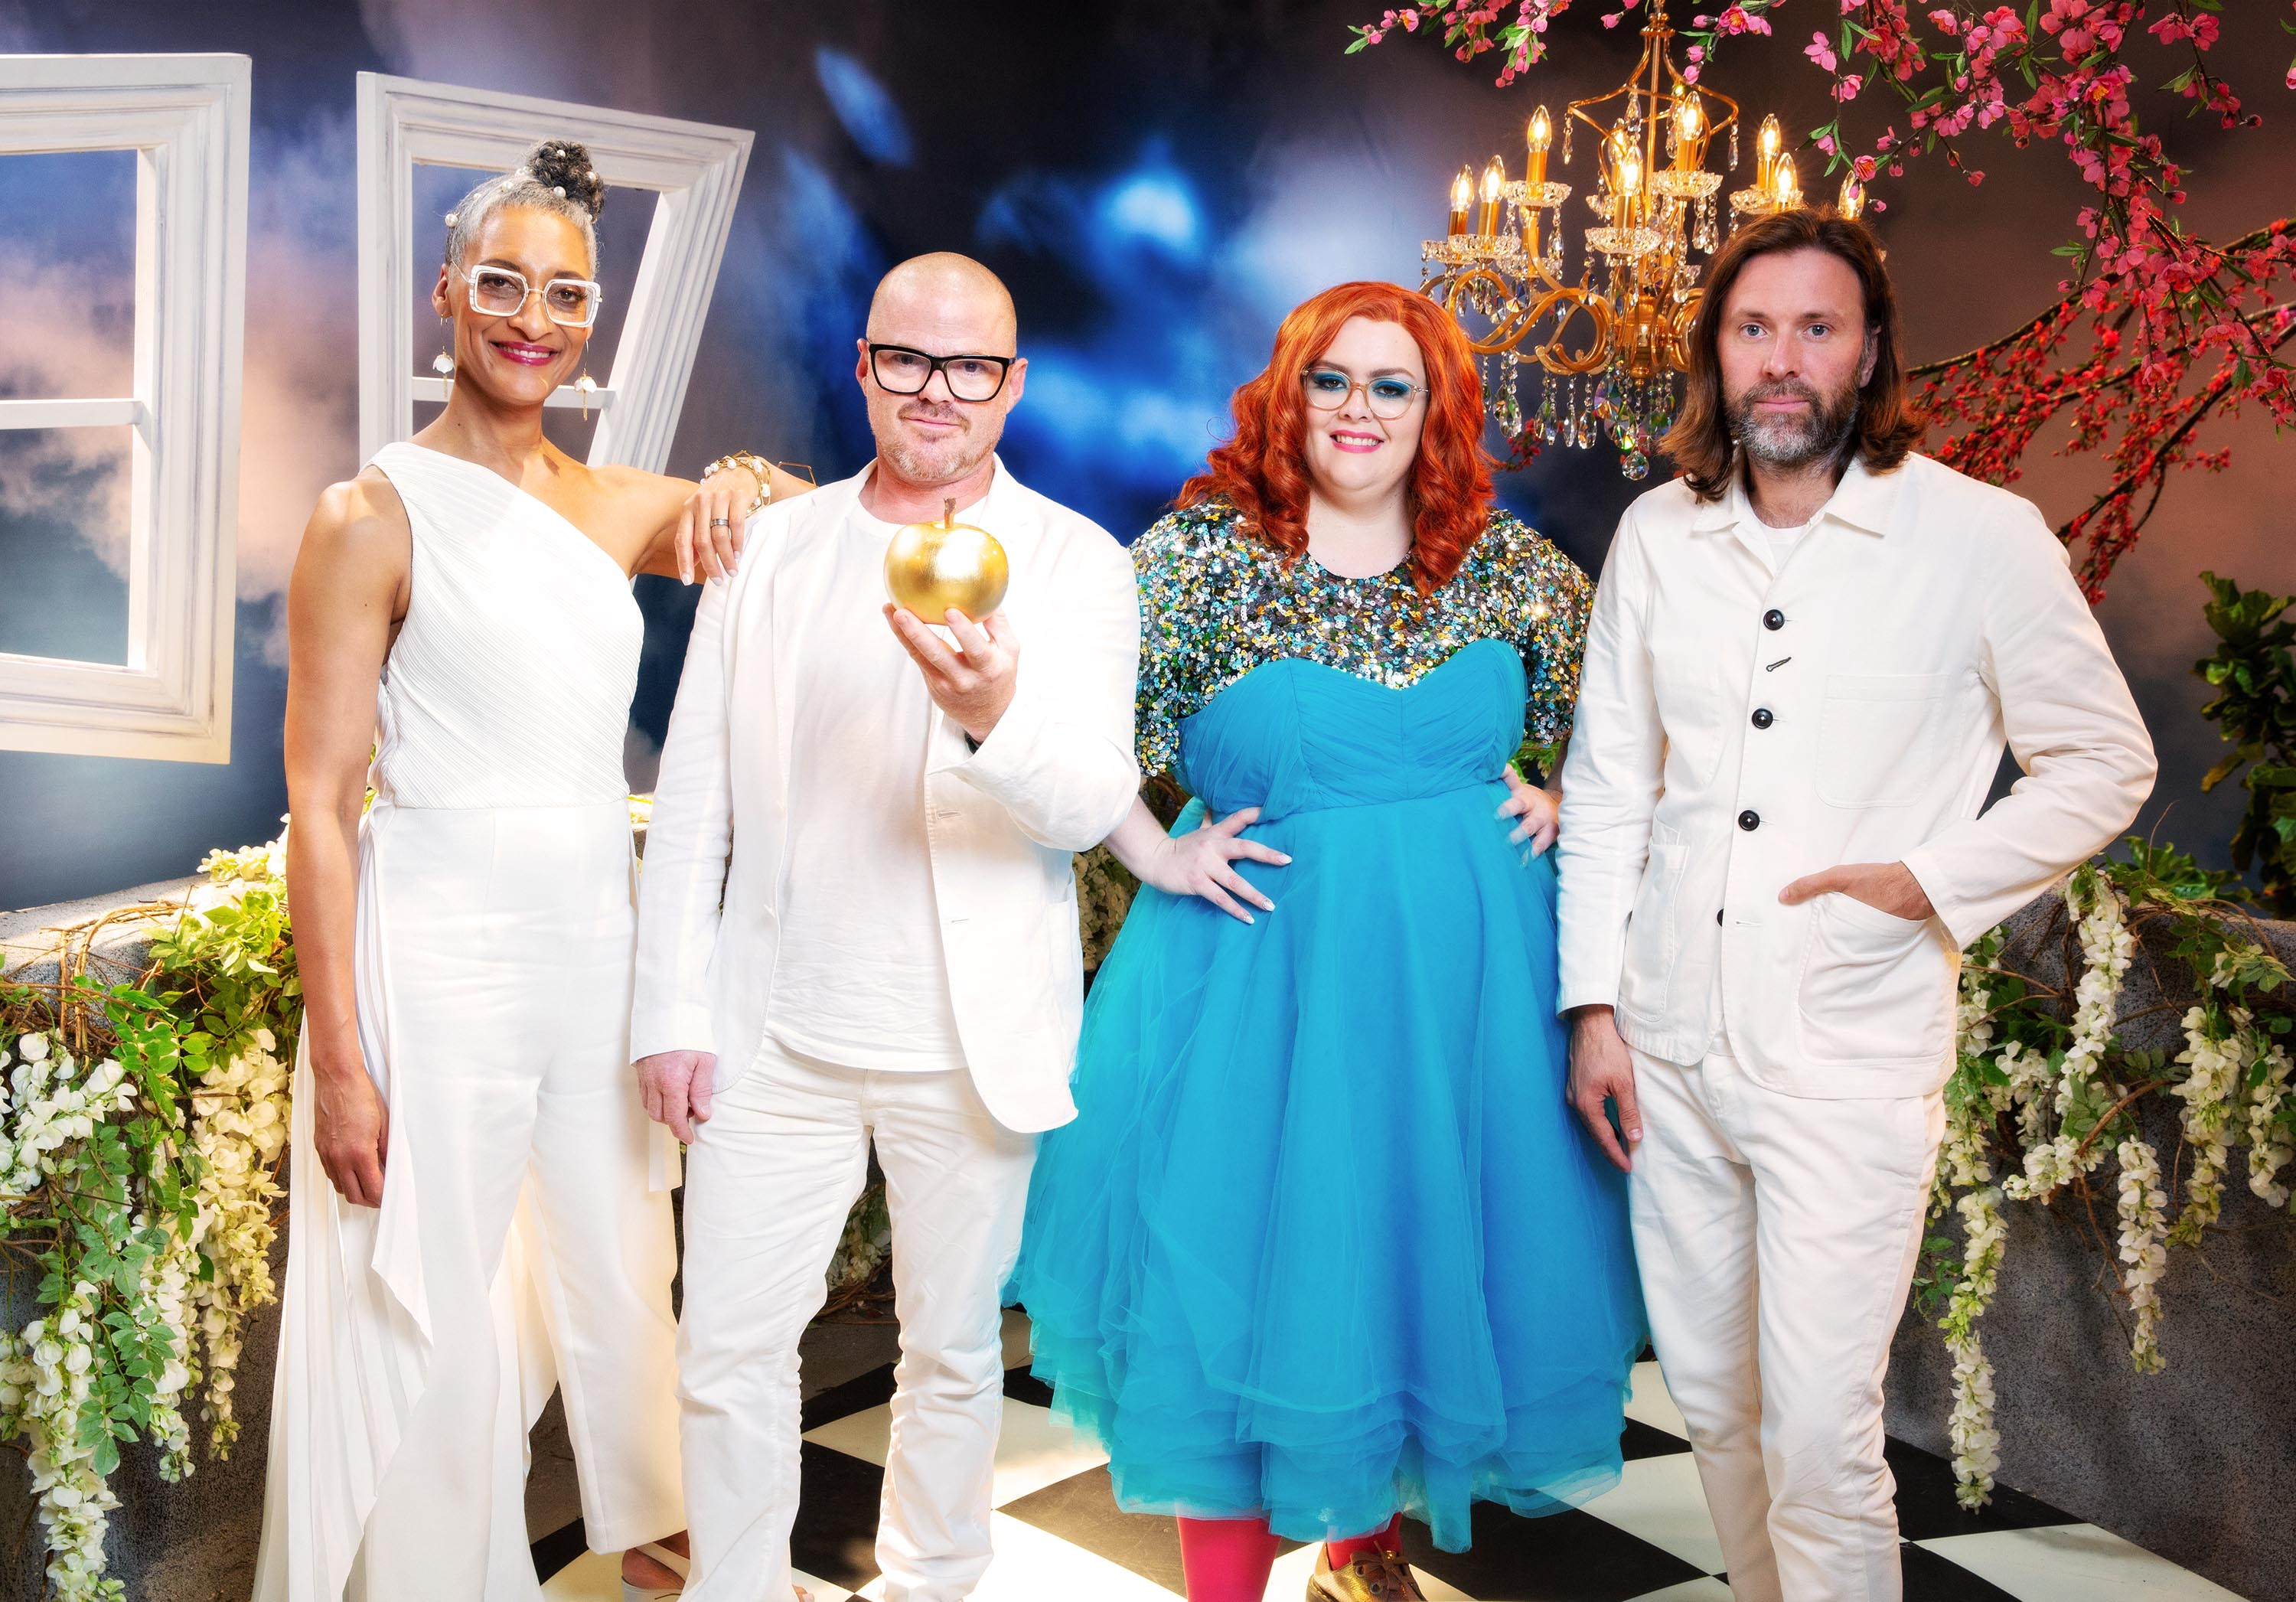 Carla Hall, Heston Blumenthal, Jayde Adams and Niklas Ekstedt